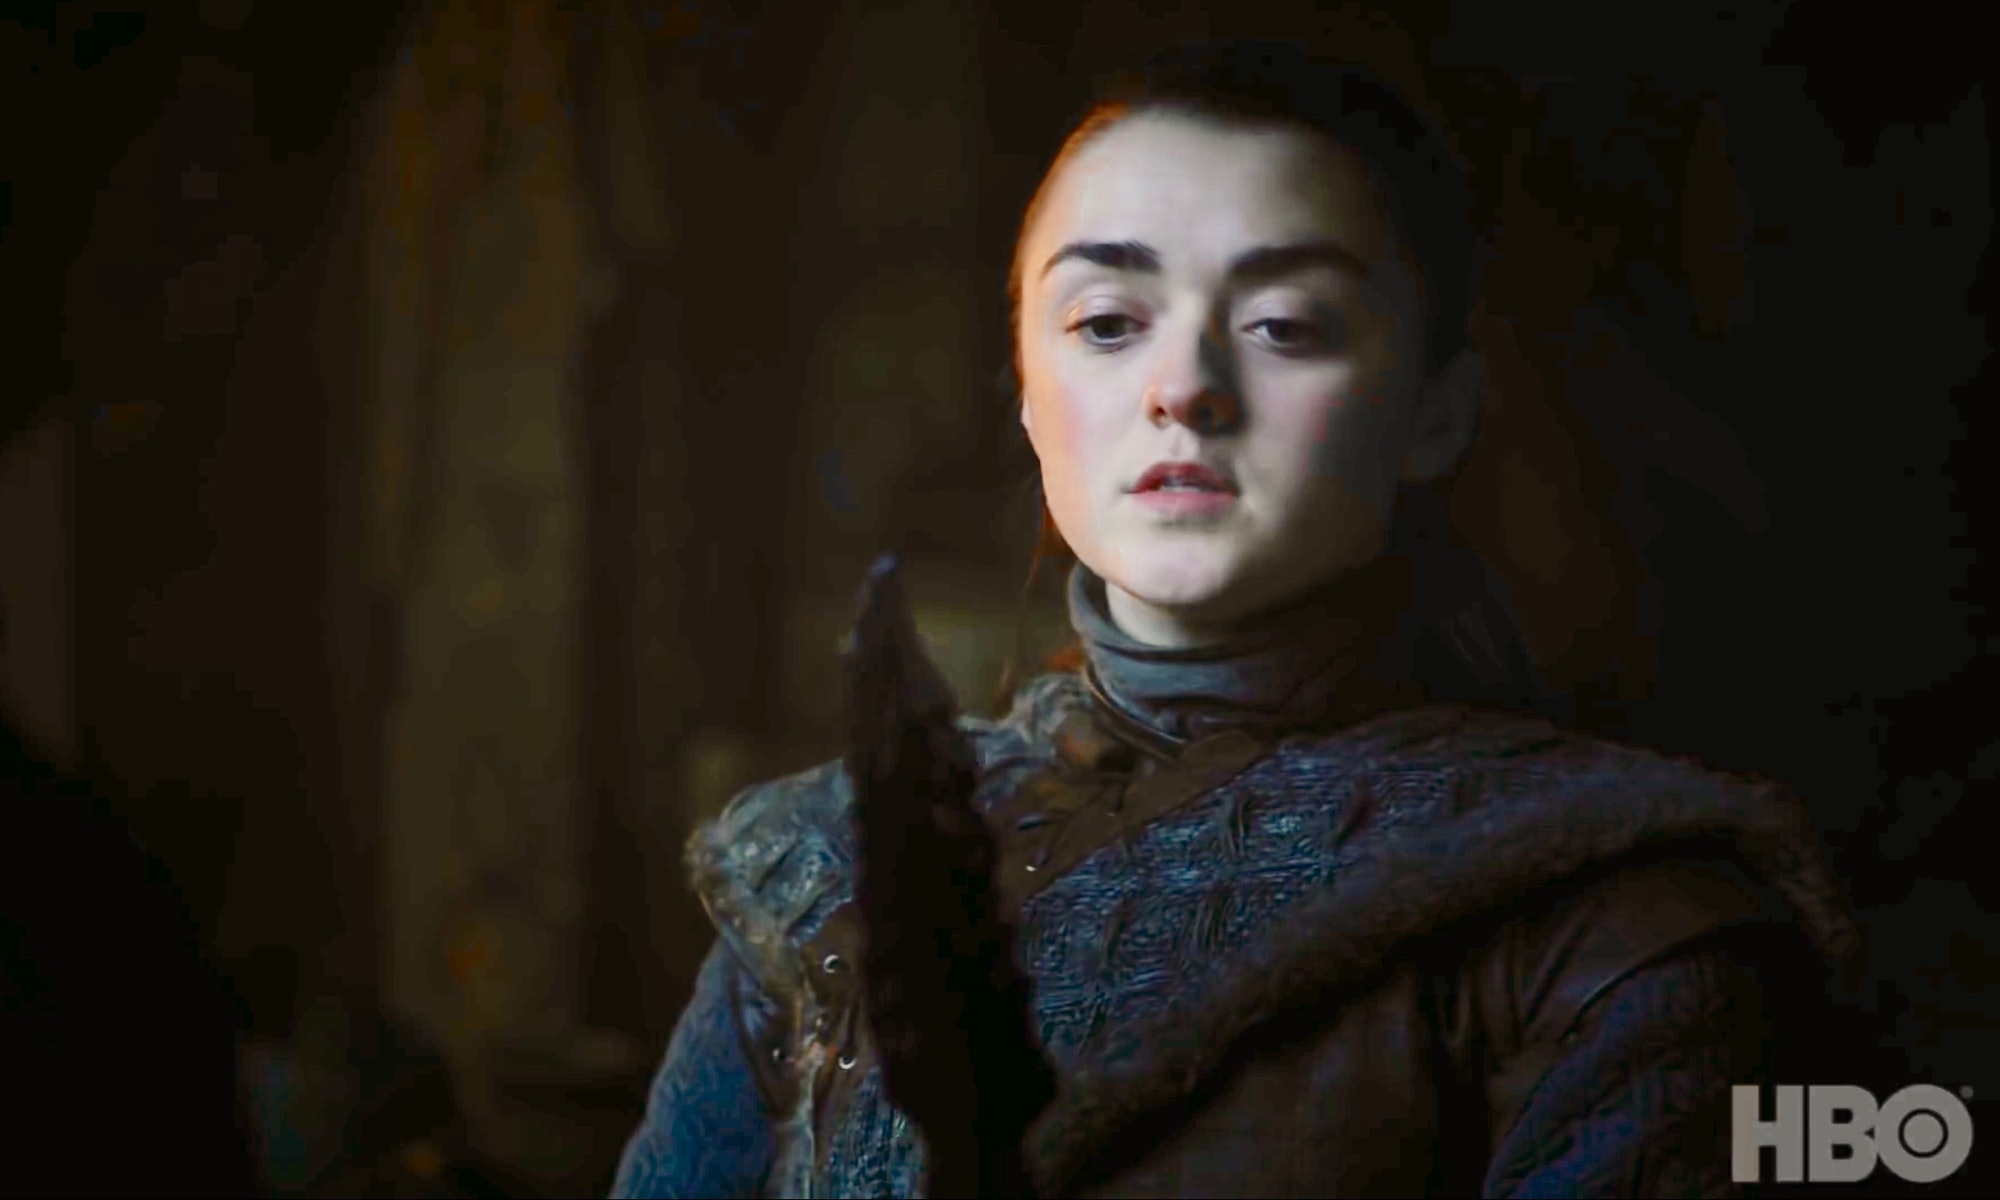 game of thrones season 8 trailer arya stark maisie williams